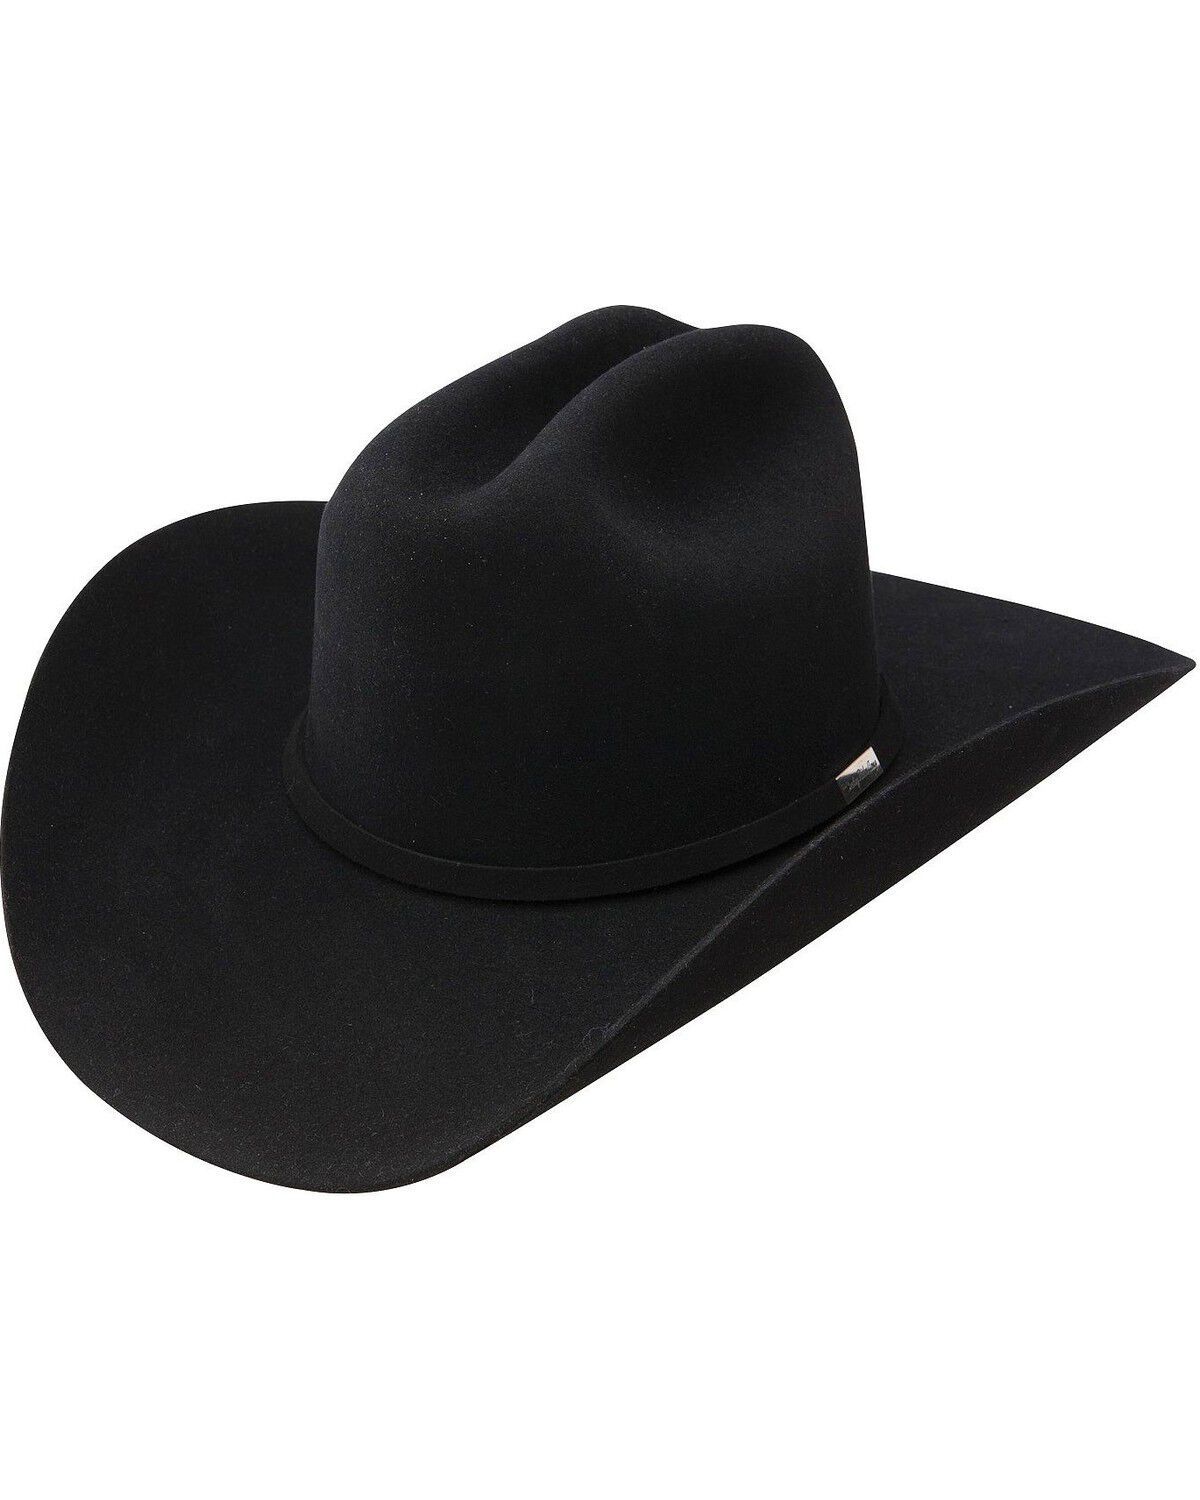 Men s Felt Wool Western Hats 40ce6561d8f